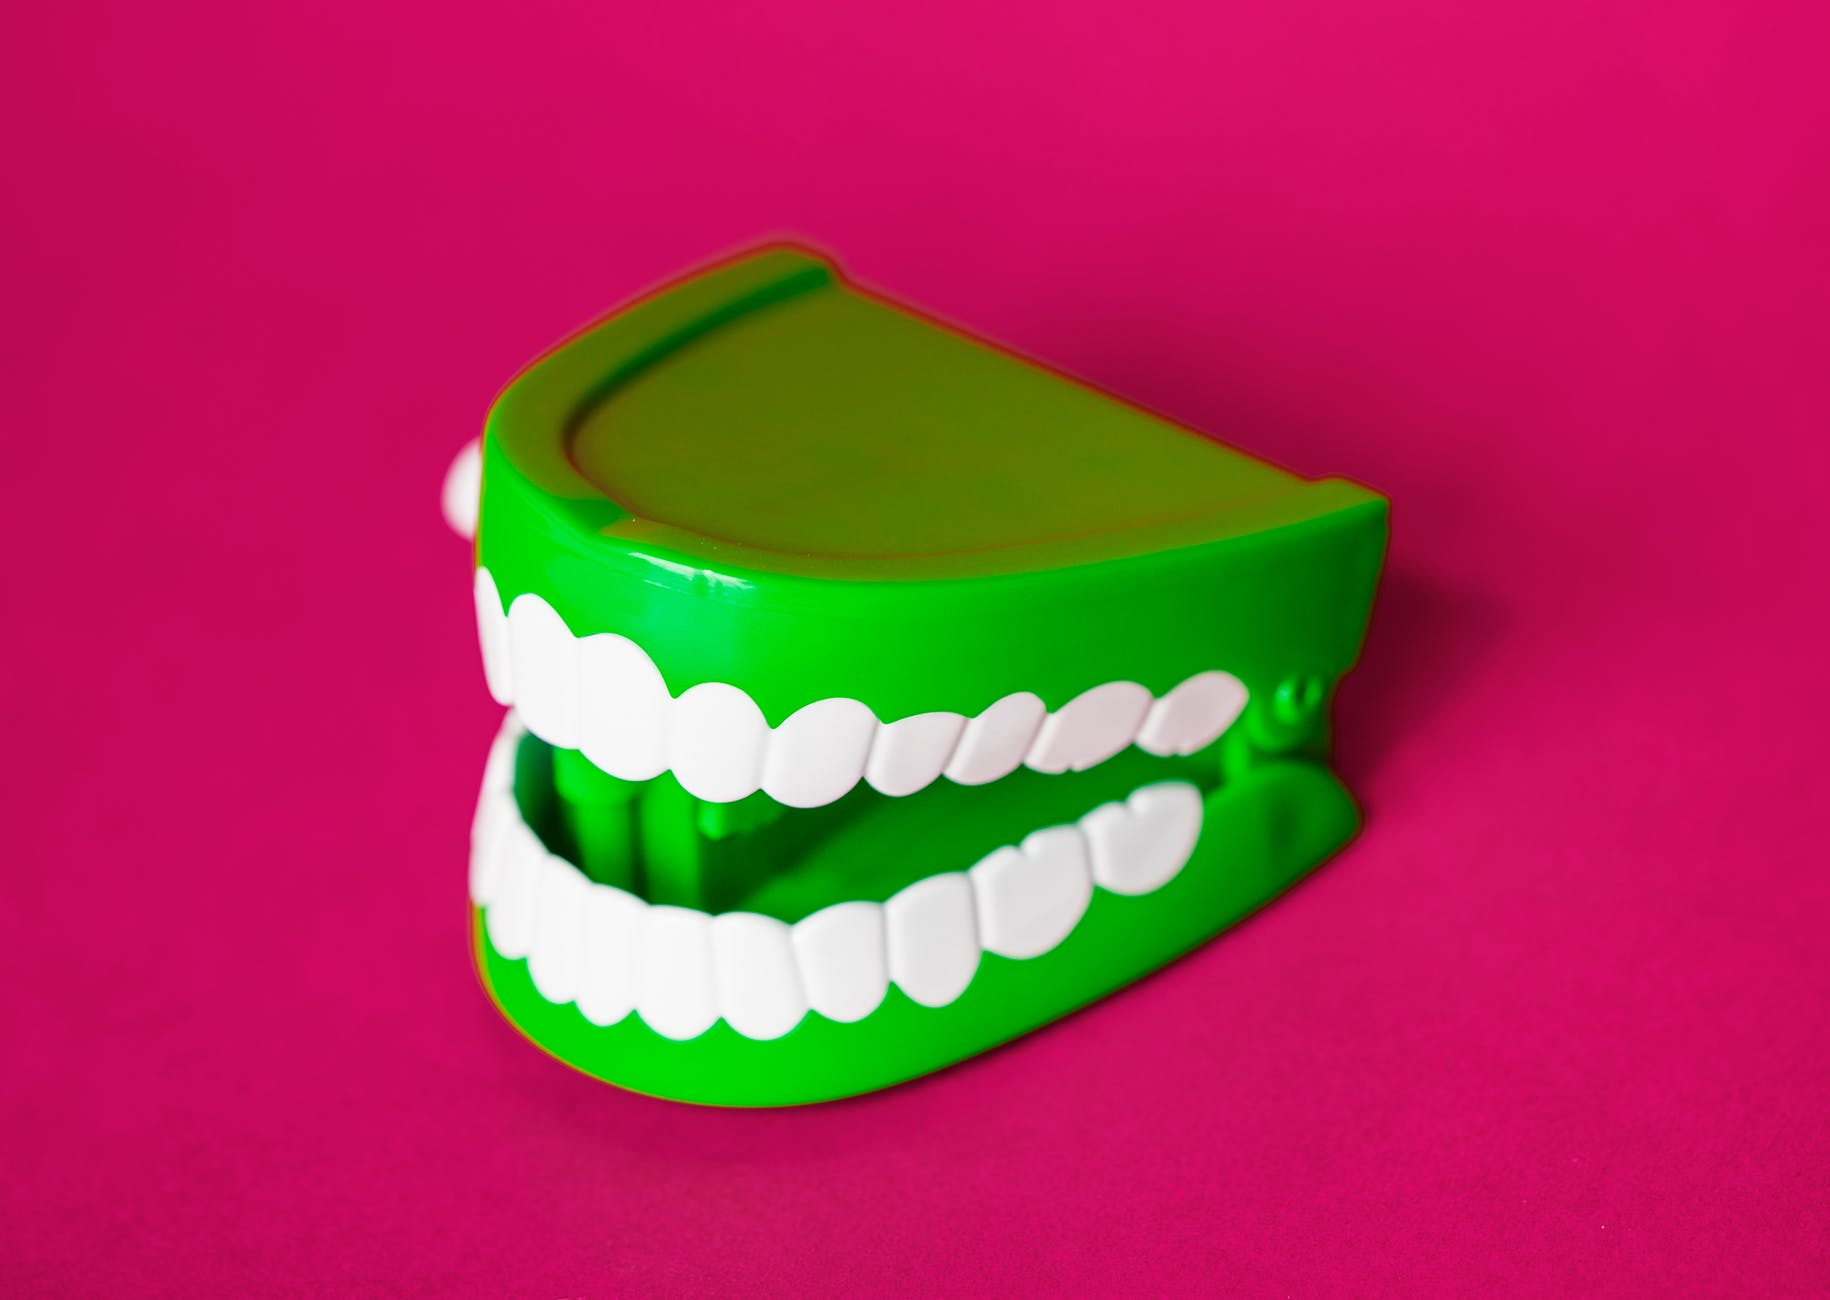 green and white denture toy